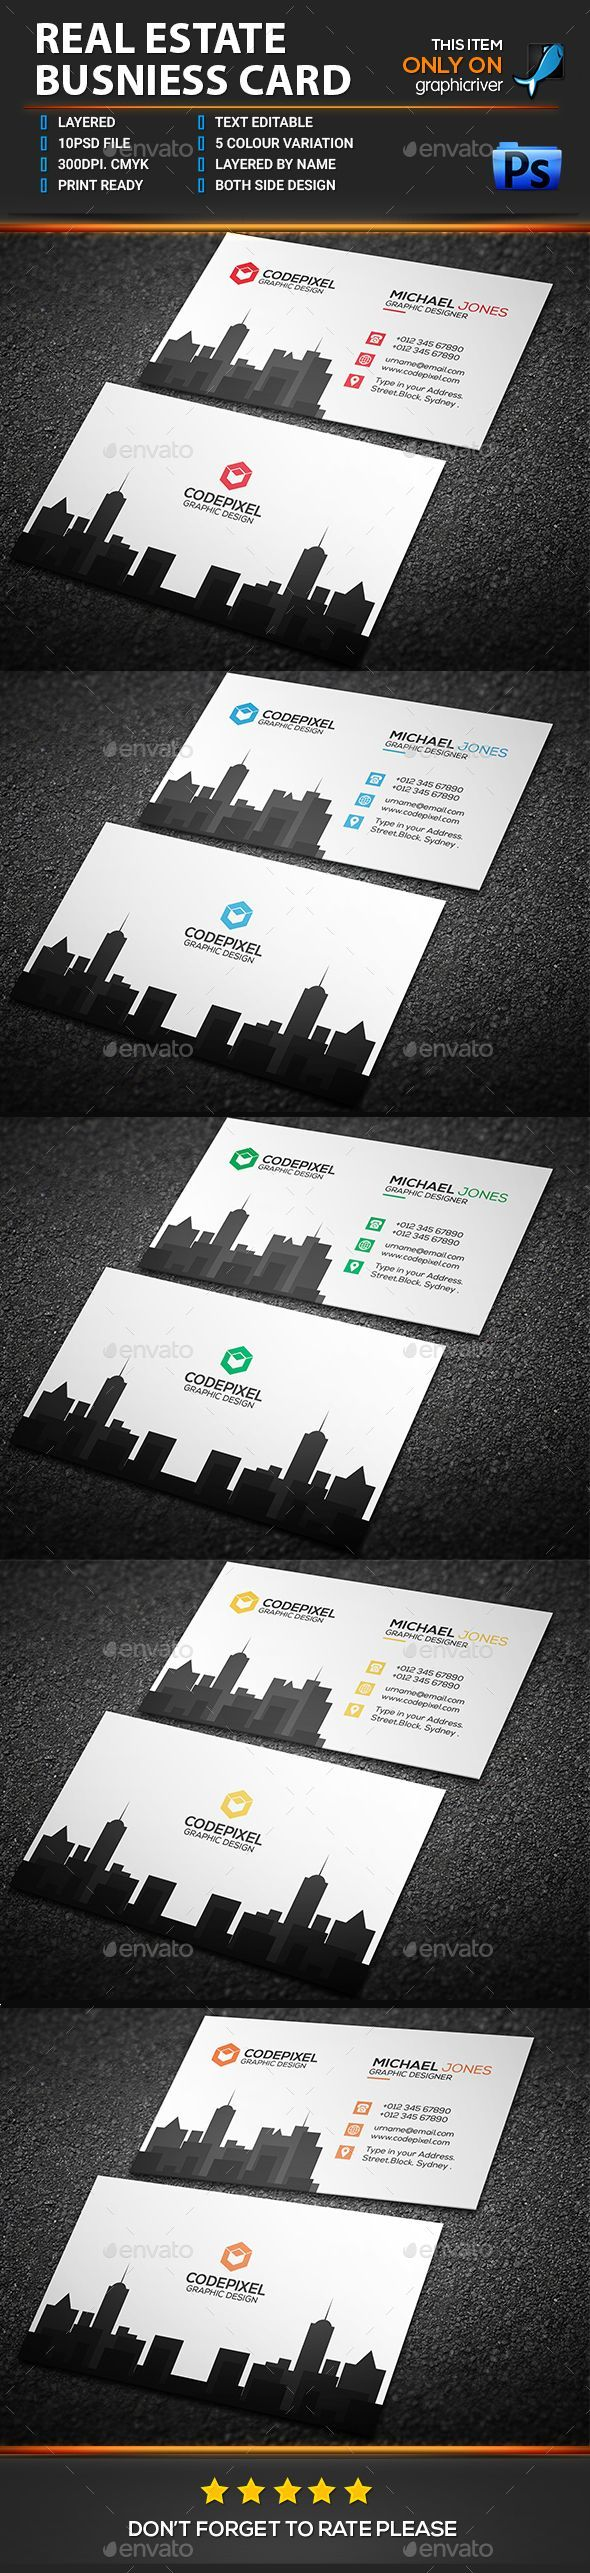 Online Business Card Template Free